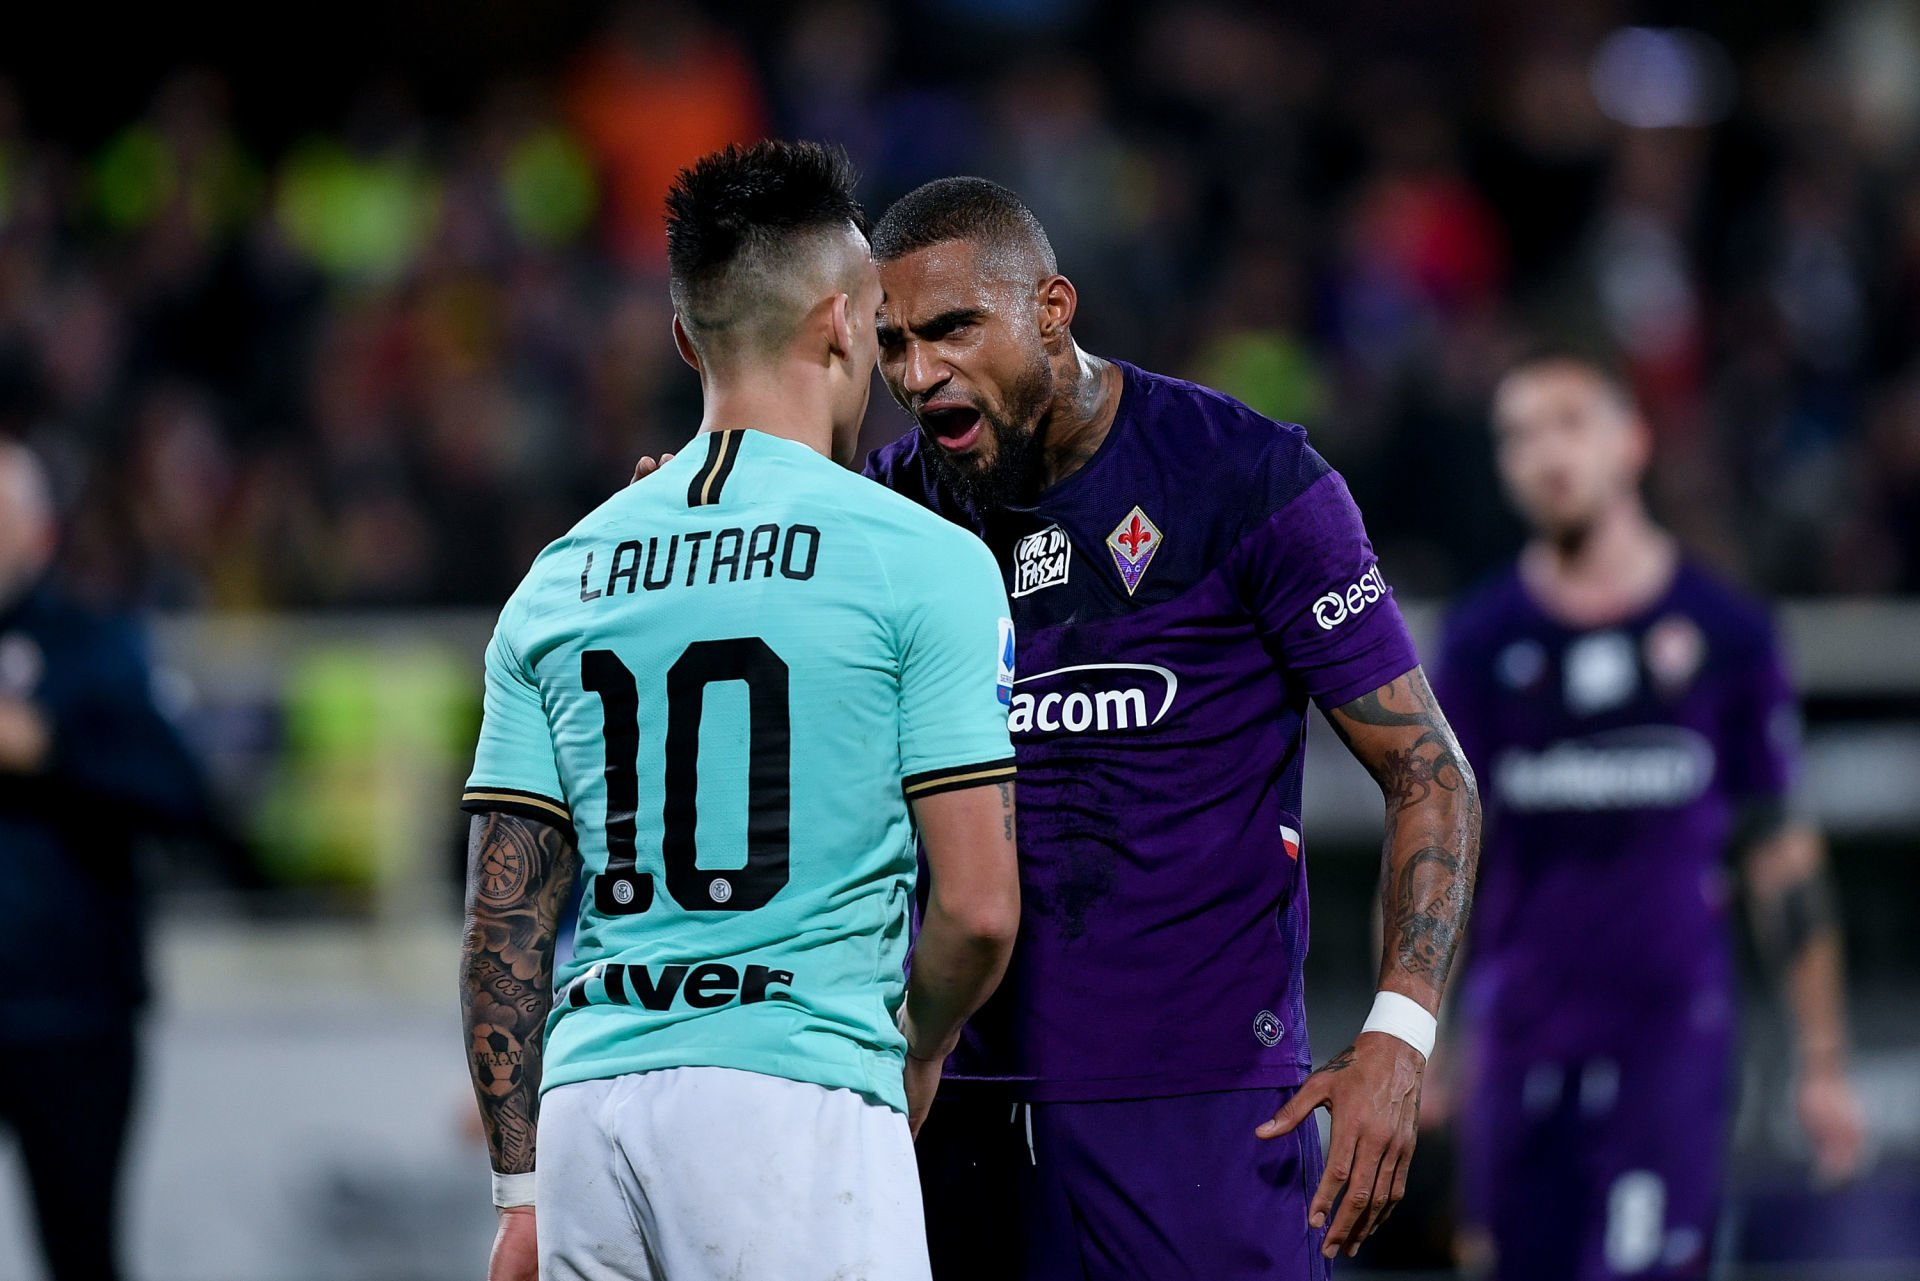 Lautaro Martinez of FC Internazionale discusses with Kevin-Prince Boateng of ACF Fiorentina during the Serie A match between Fiorentina and Inter Milan at Stadio Artemio Franchi, Florence, Italy on 15 December 2019. Photo by Giuseppe Maffia. PILKA NOZNA SEZON 2019/2020 LIGA WLOSKA FOT. SPORTPHOTO24/NEWSPIX.PL ENGLAND OUT! --- Newspix.pl *** Local Caption *** www.newspix.pl mail us: info@newspix.pl call us: 0048 022 23 22 222 --- Polish Picture Agency by Ringier Axel Springer Poland